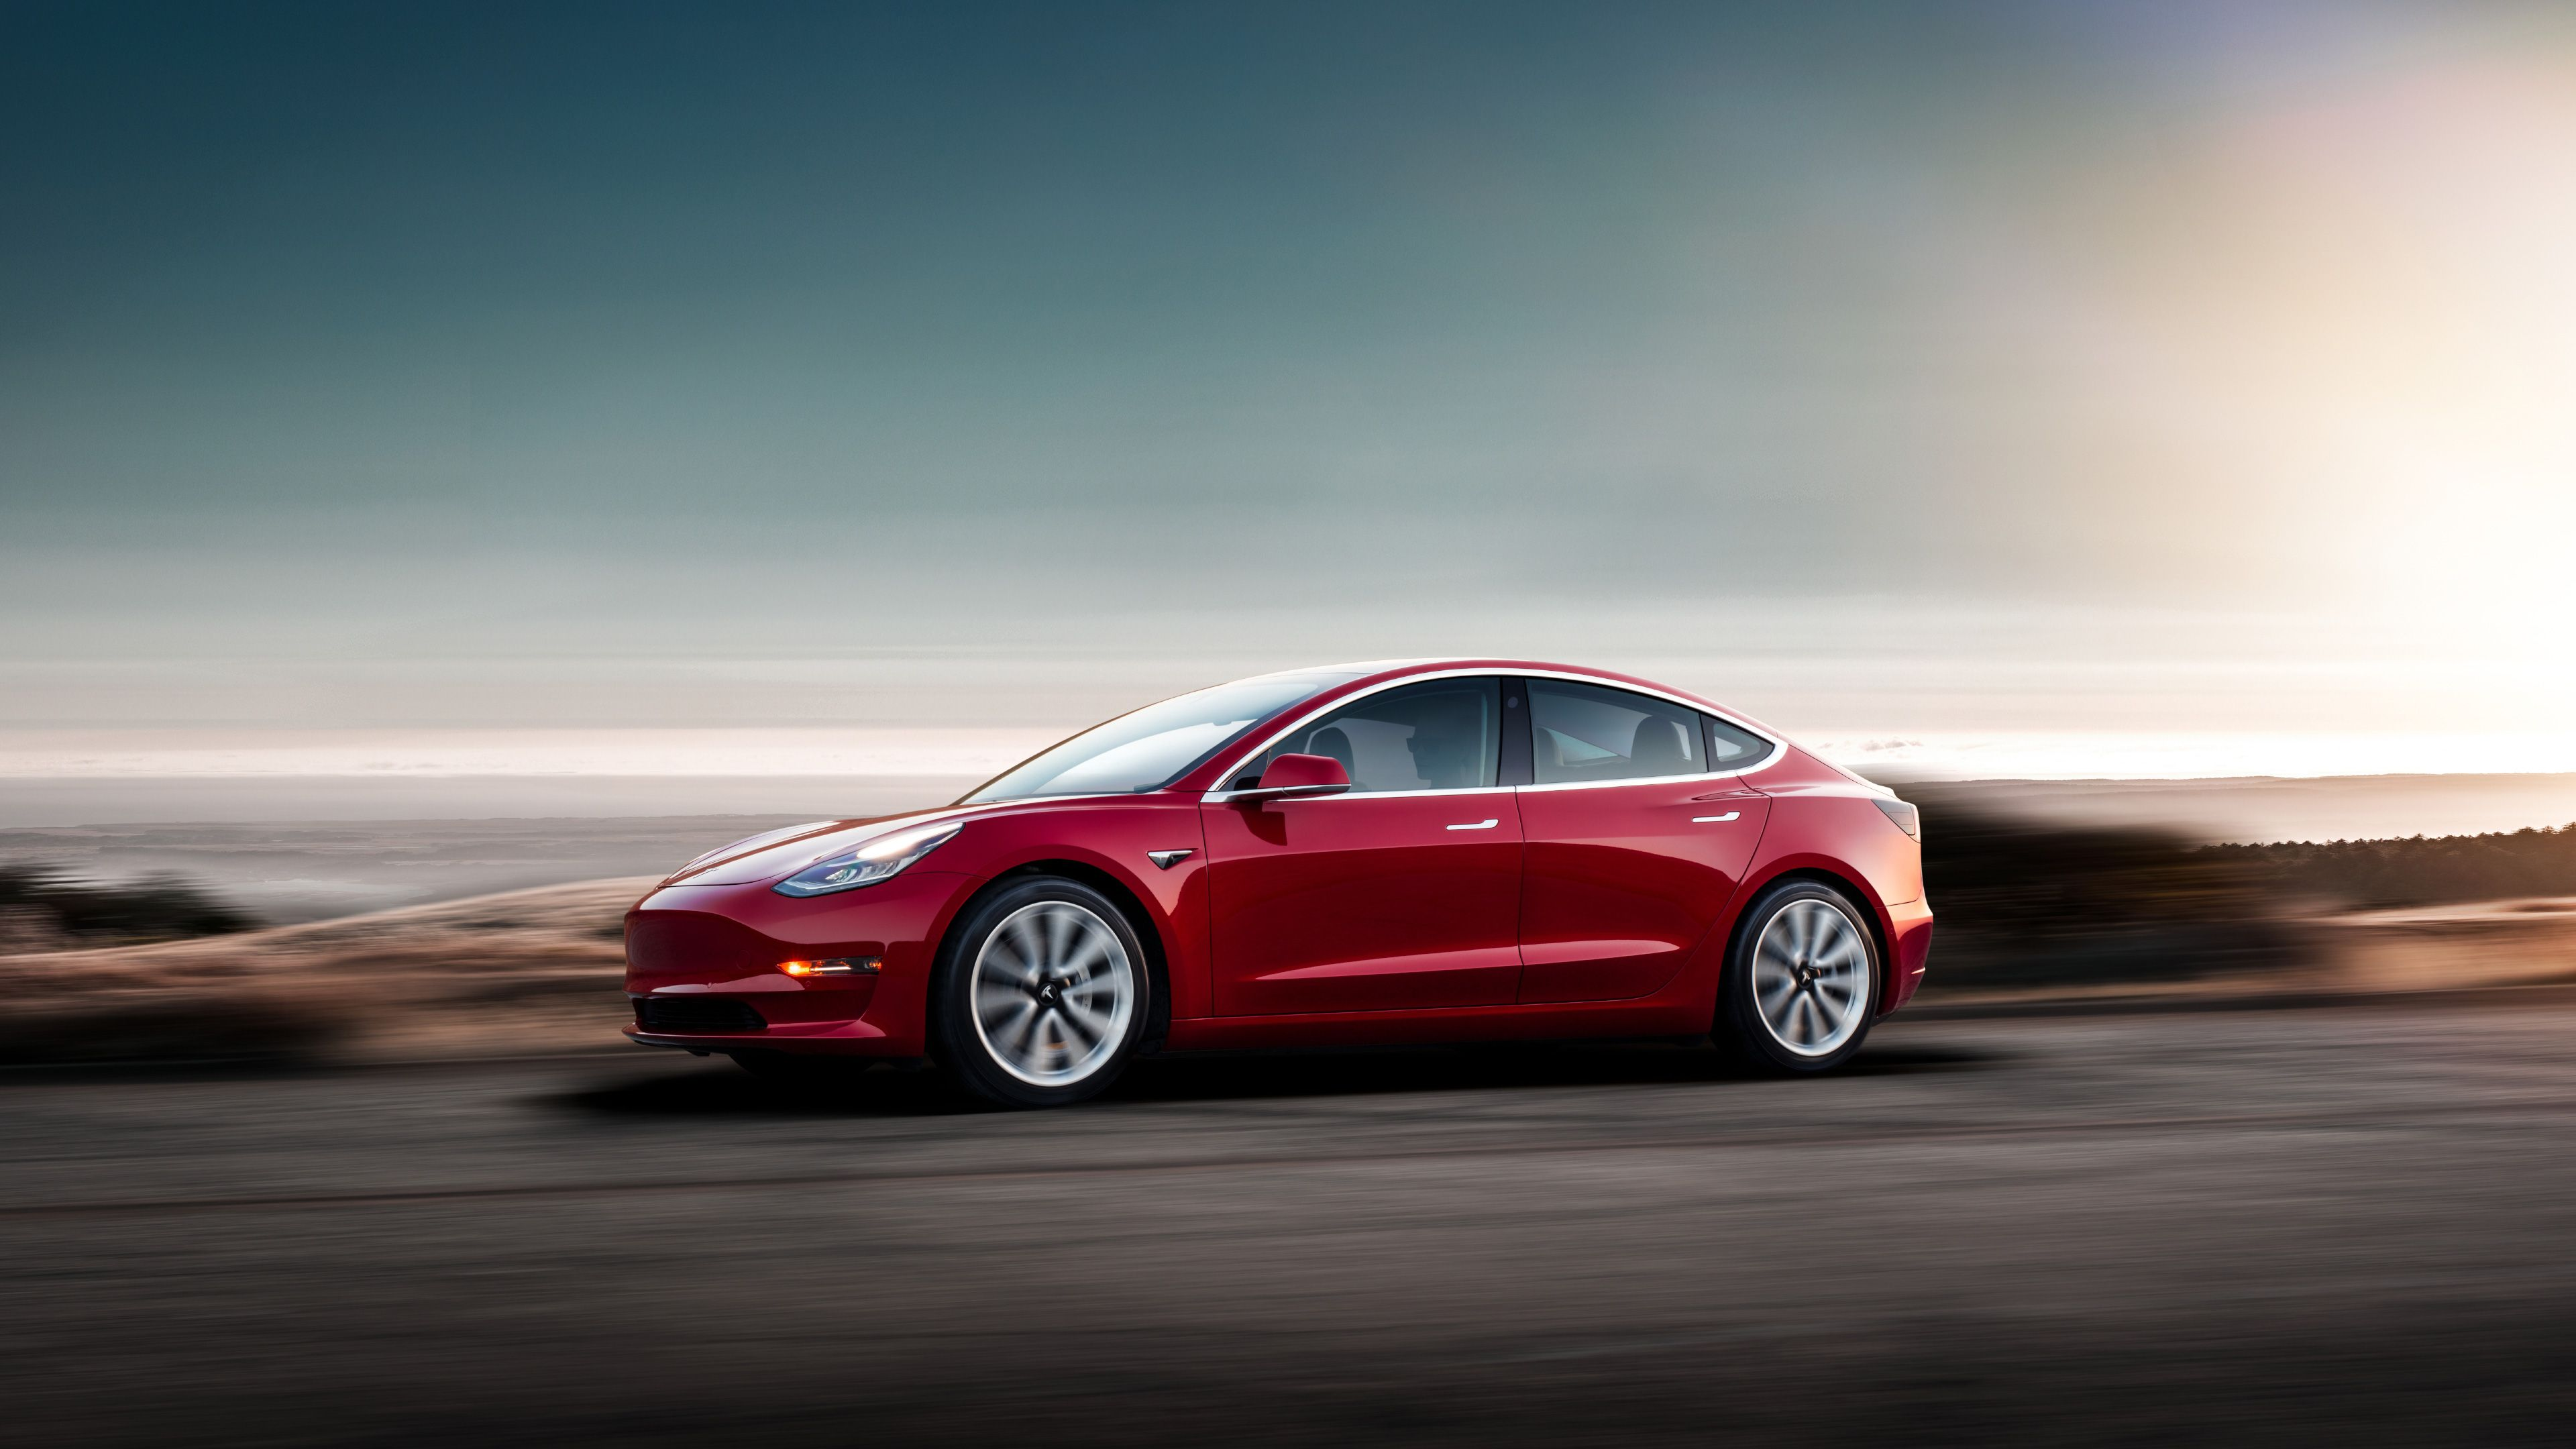 Tesla Model 3 Wallpapers   Top Tesla Model 3 Backgrounds 3840x2160